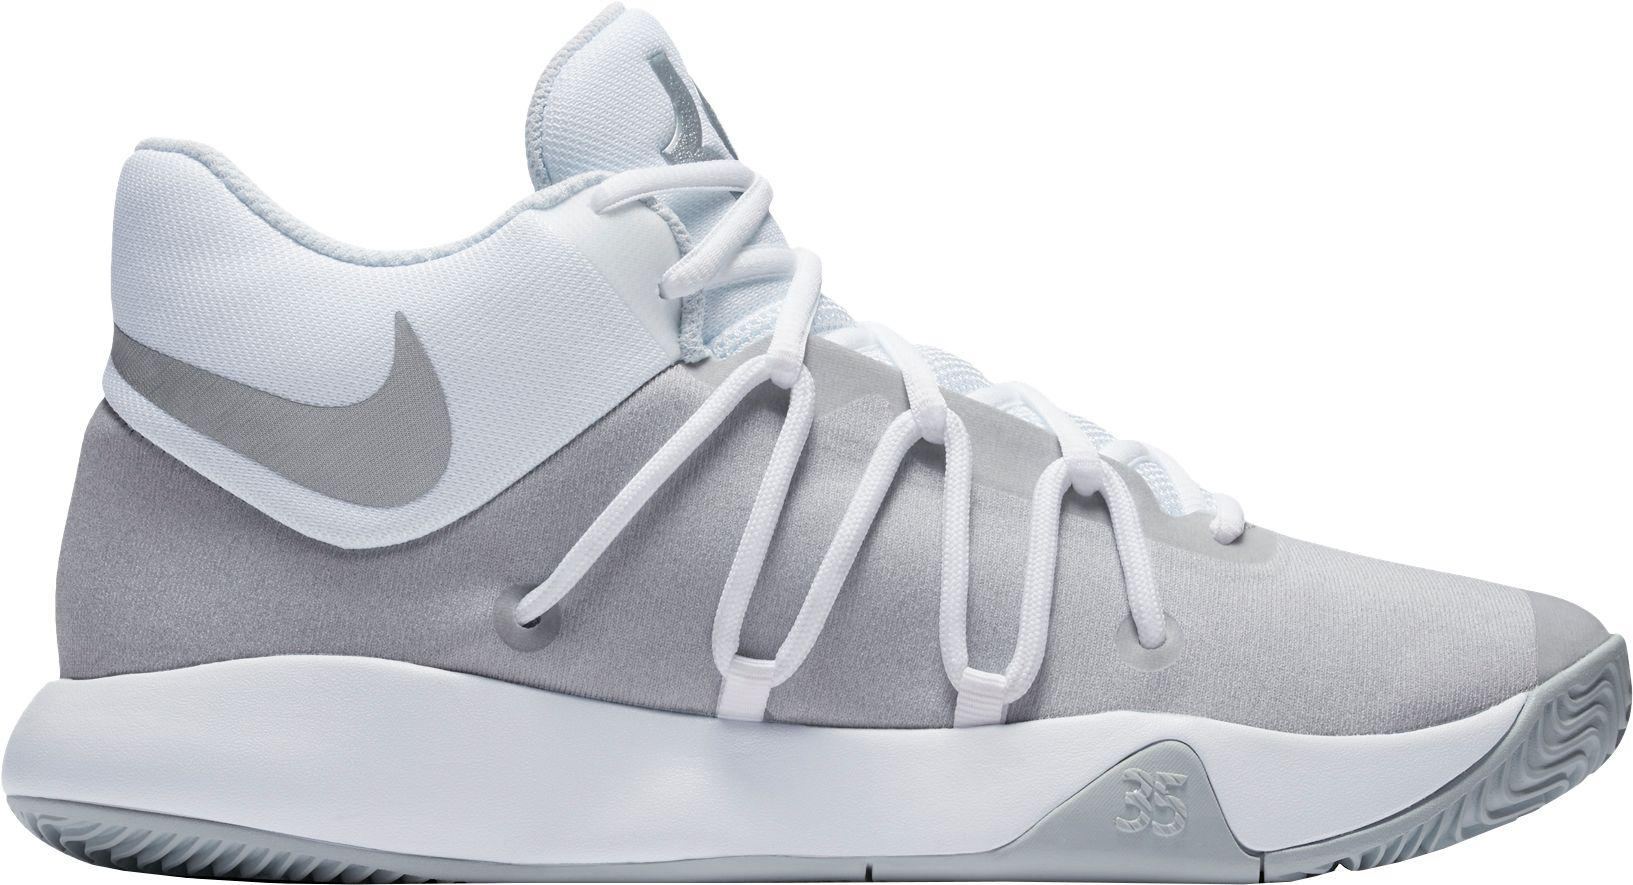 cf9cbc848355 Nike Kd Trey 5 V Basketball Shoes in Gray for Men - Lyst